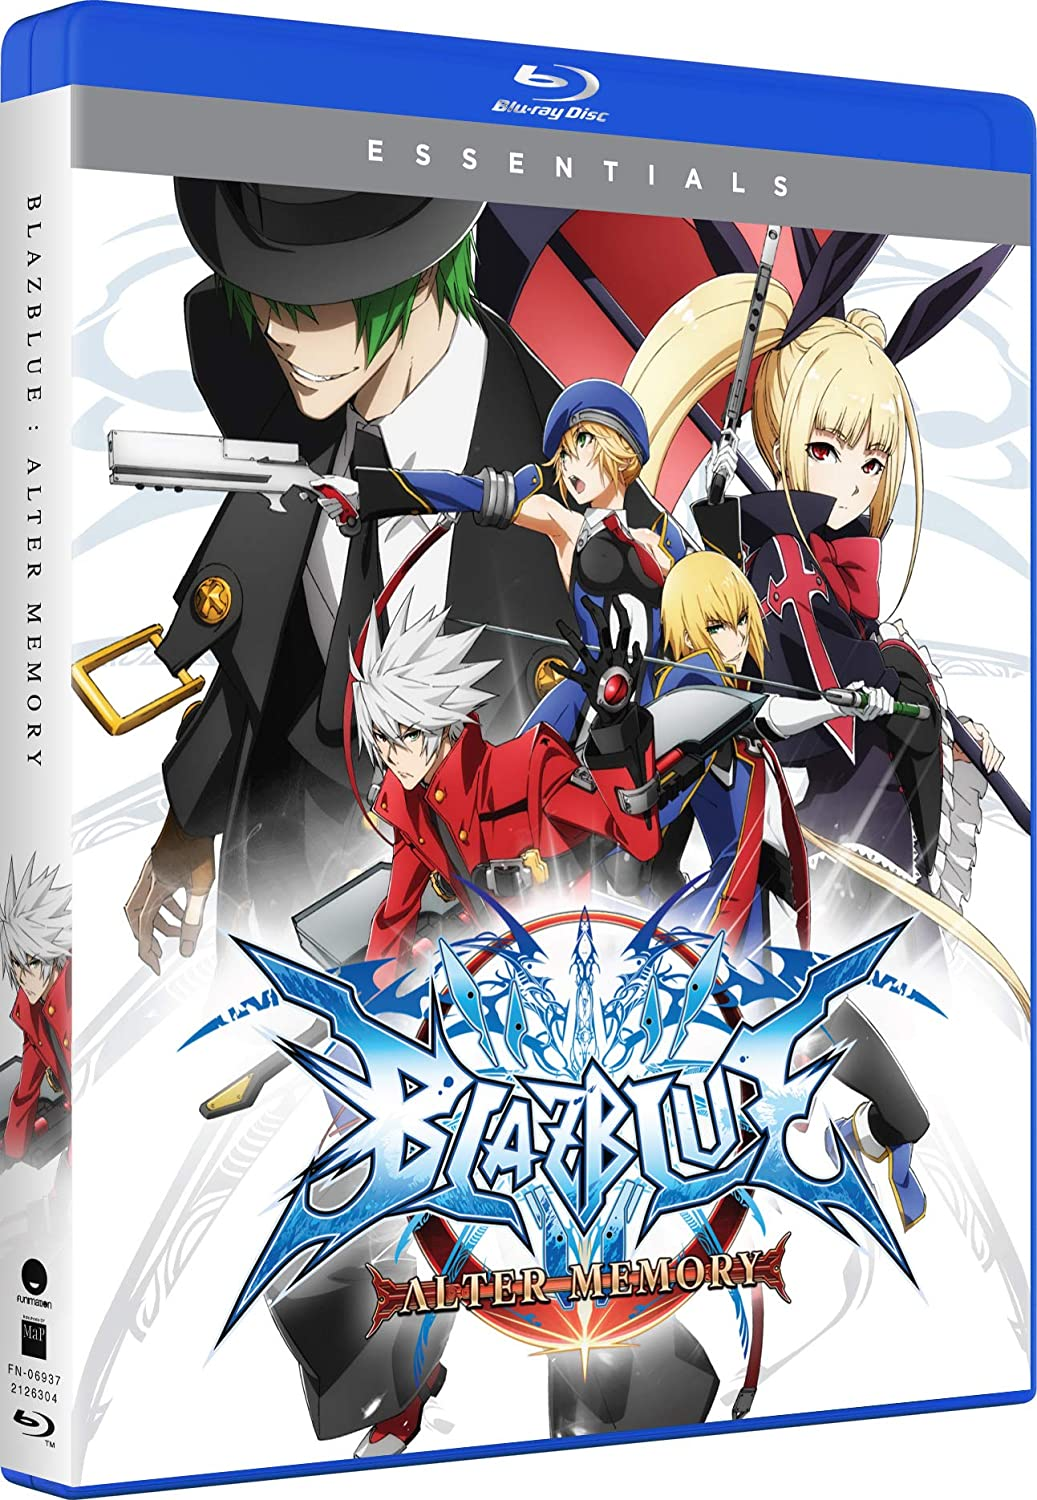 Amazon Opens Pre-Orders For BlazBlue: Alter Memory Complete Series Blu-Ray Set